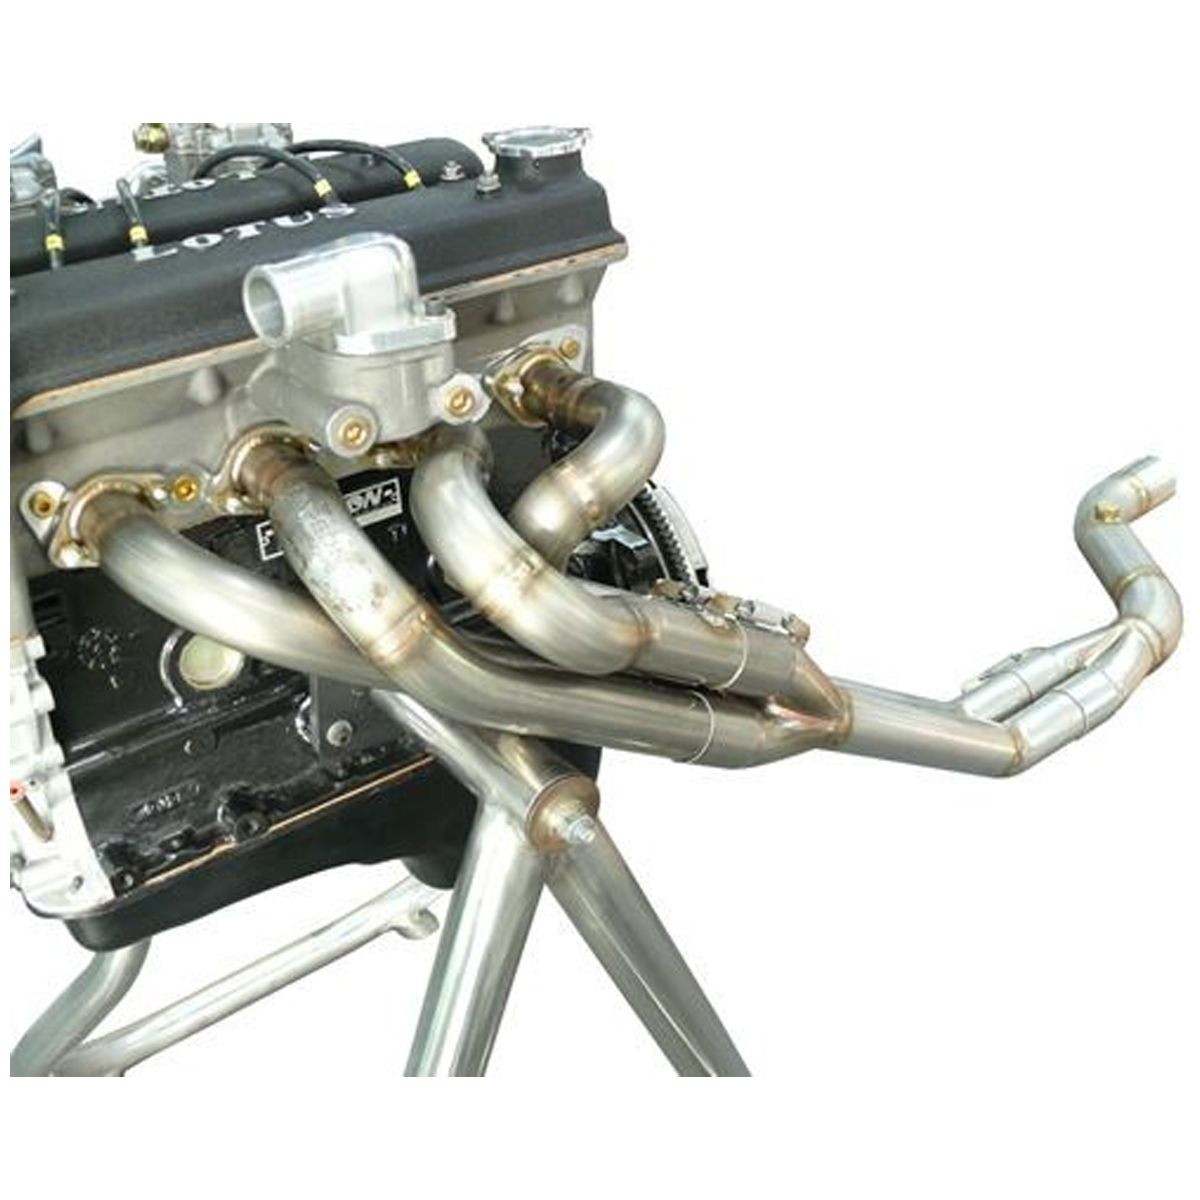 Simpson Stainless Exhaust Manifold Ford Cortina Mk1/2 Lotus Twin Cam 4-2-1